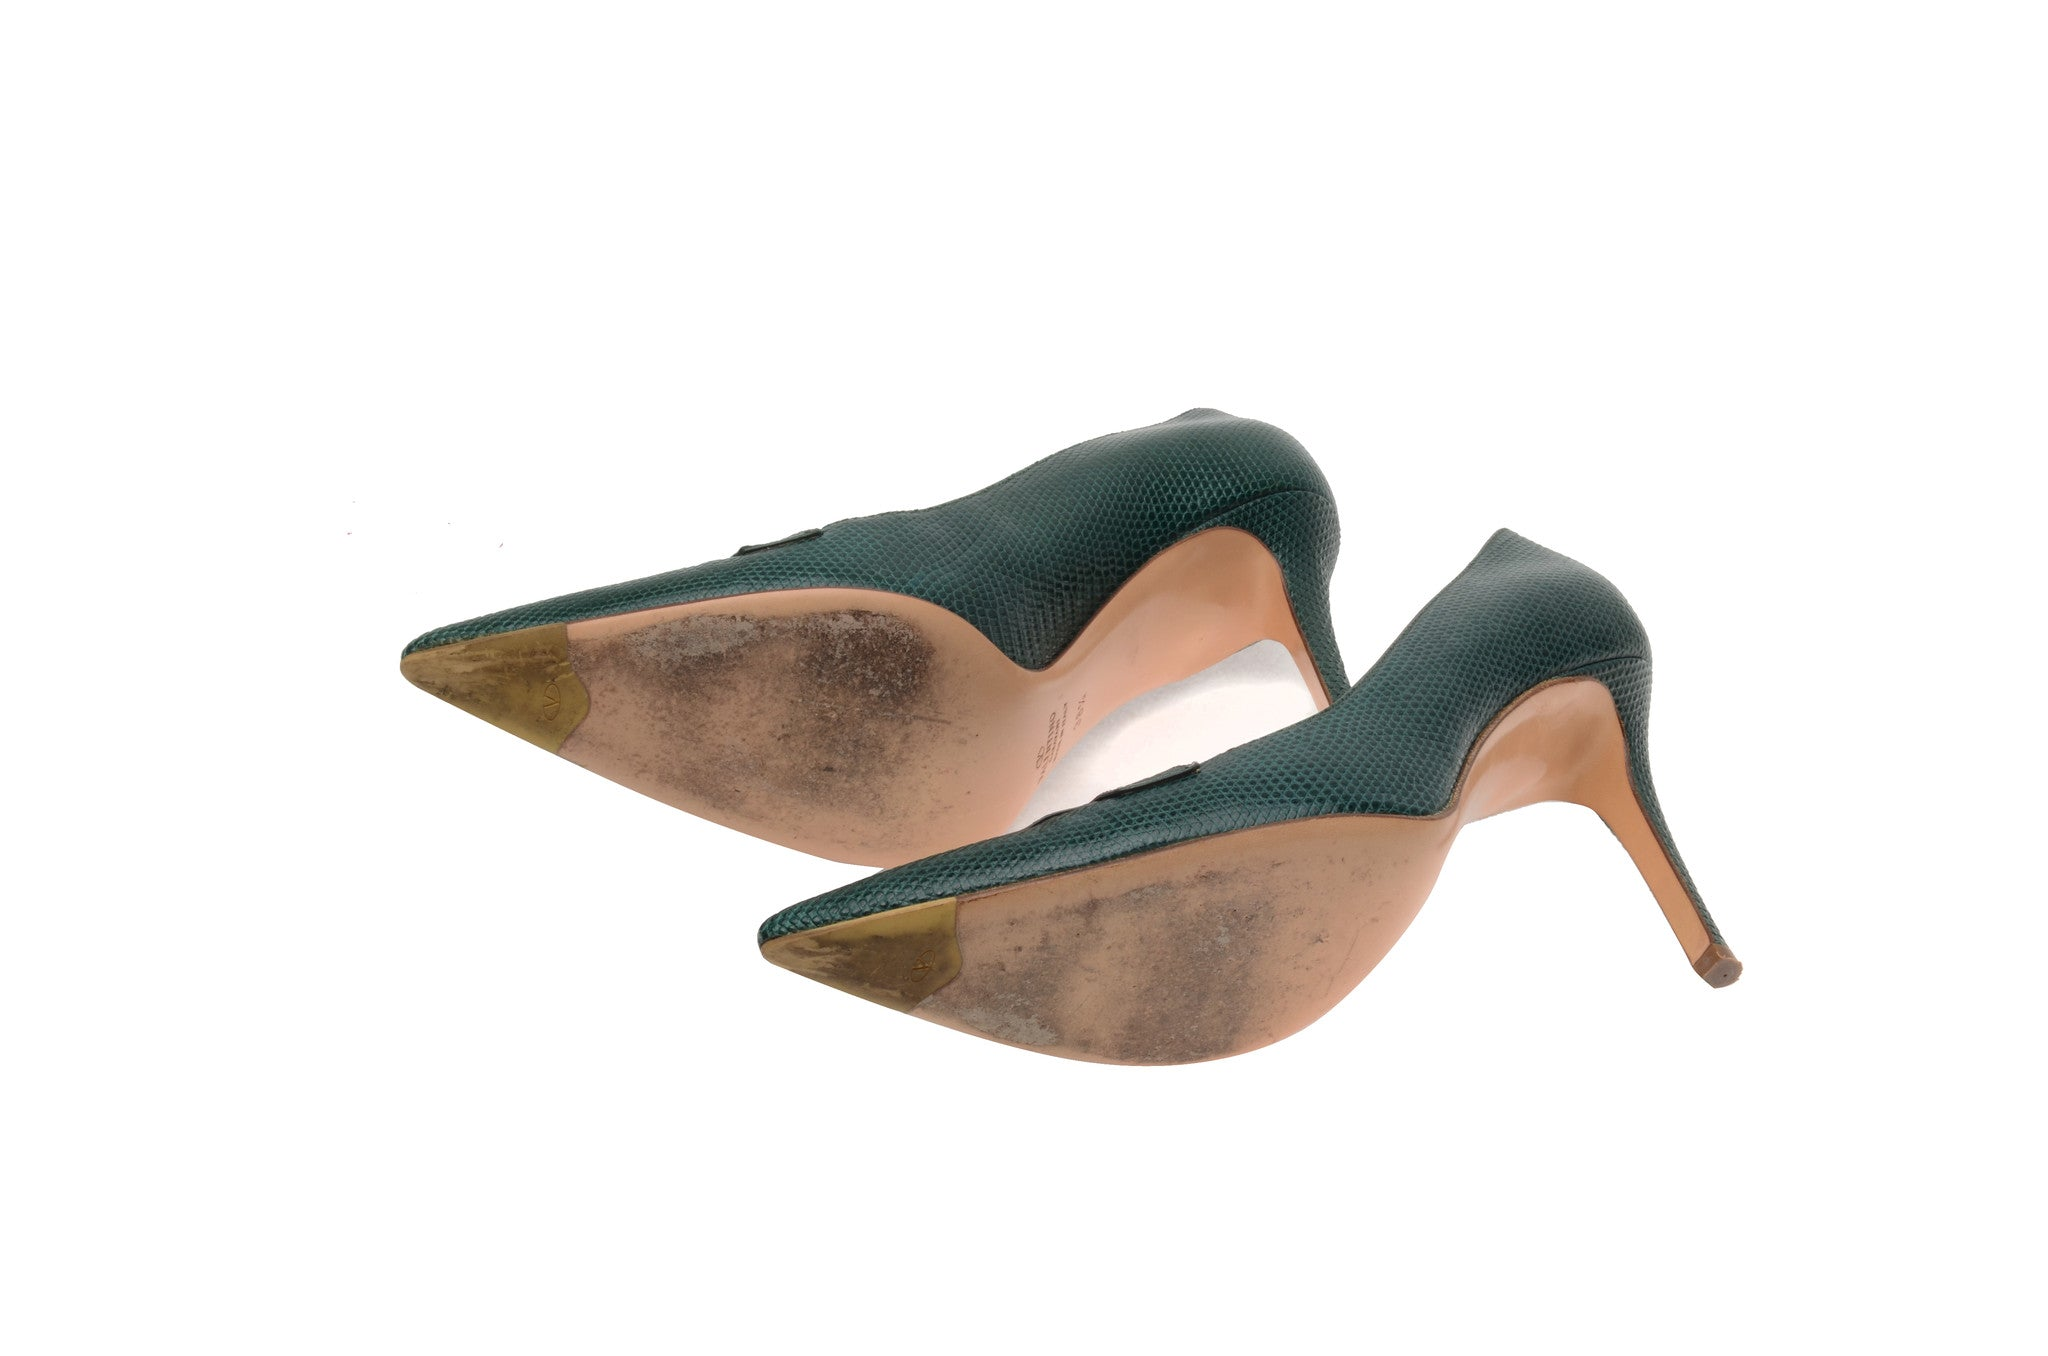 running shoes high quality discount sale Valentino - Green Lizard Pointed Heels - IT 38 1/2 – LUXHAVE